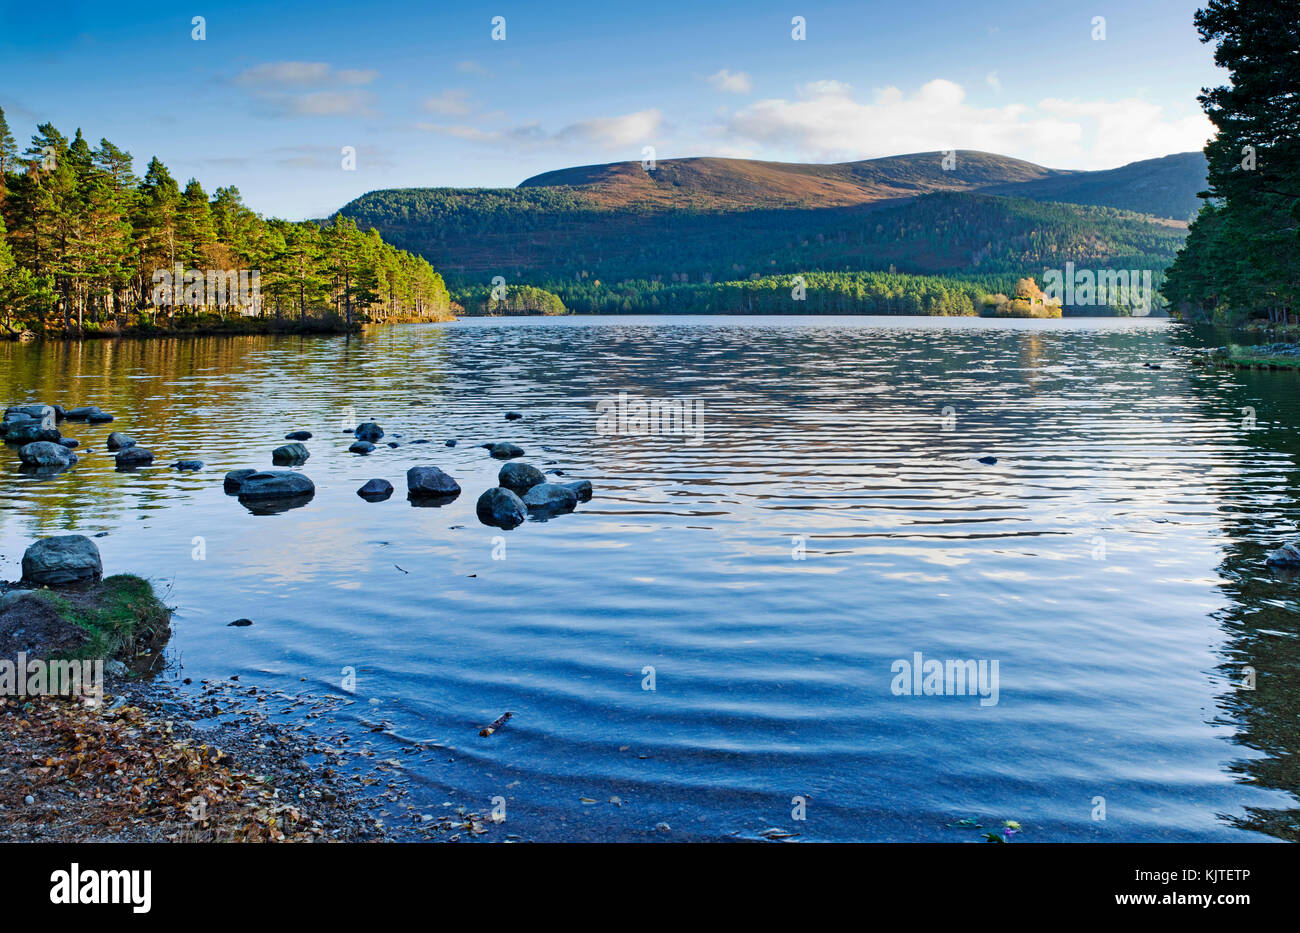 Loch an Eilein, Rothiemurchus, Cairngorms, Scottish Highlands, autumn, the island with ruined castle in the distance - Stock Image